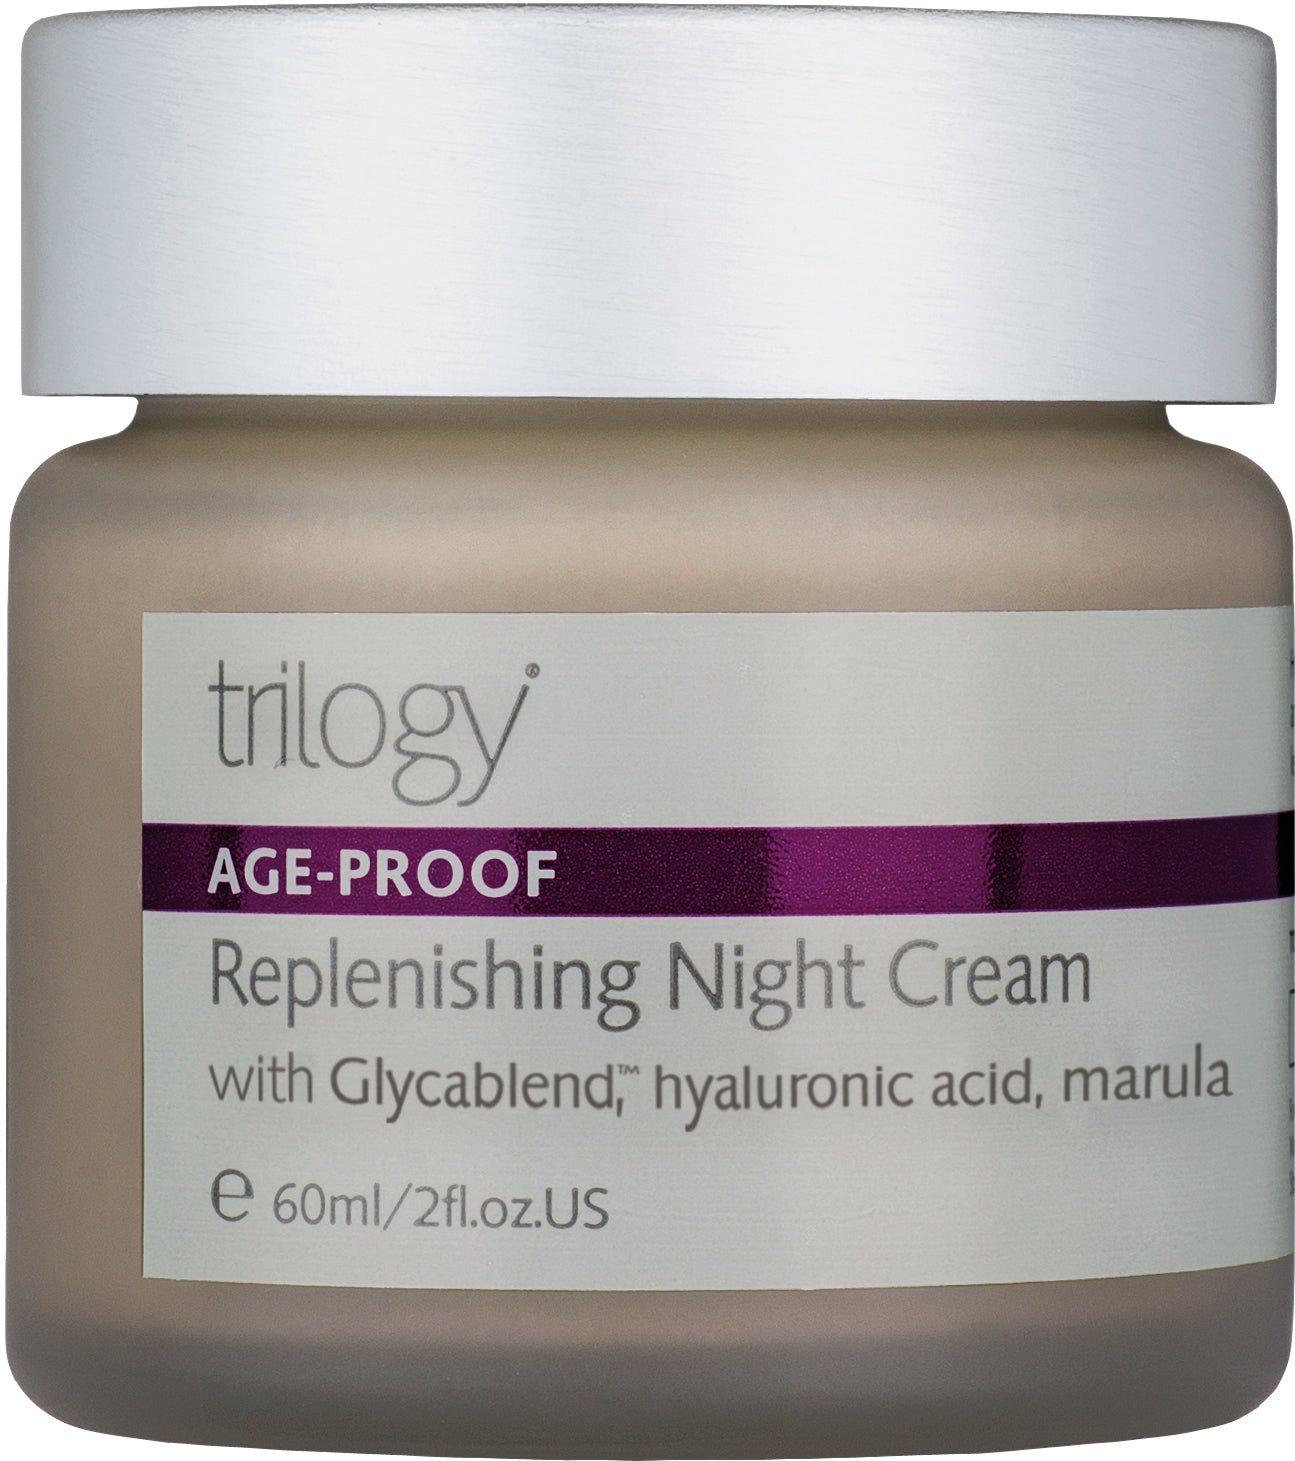 Trilogy Replenishing Night Cream 60ml